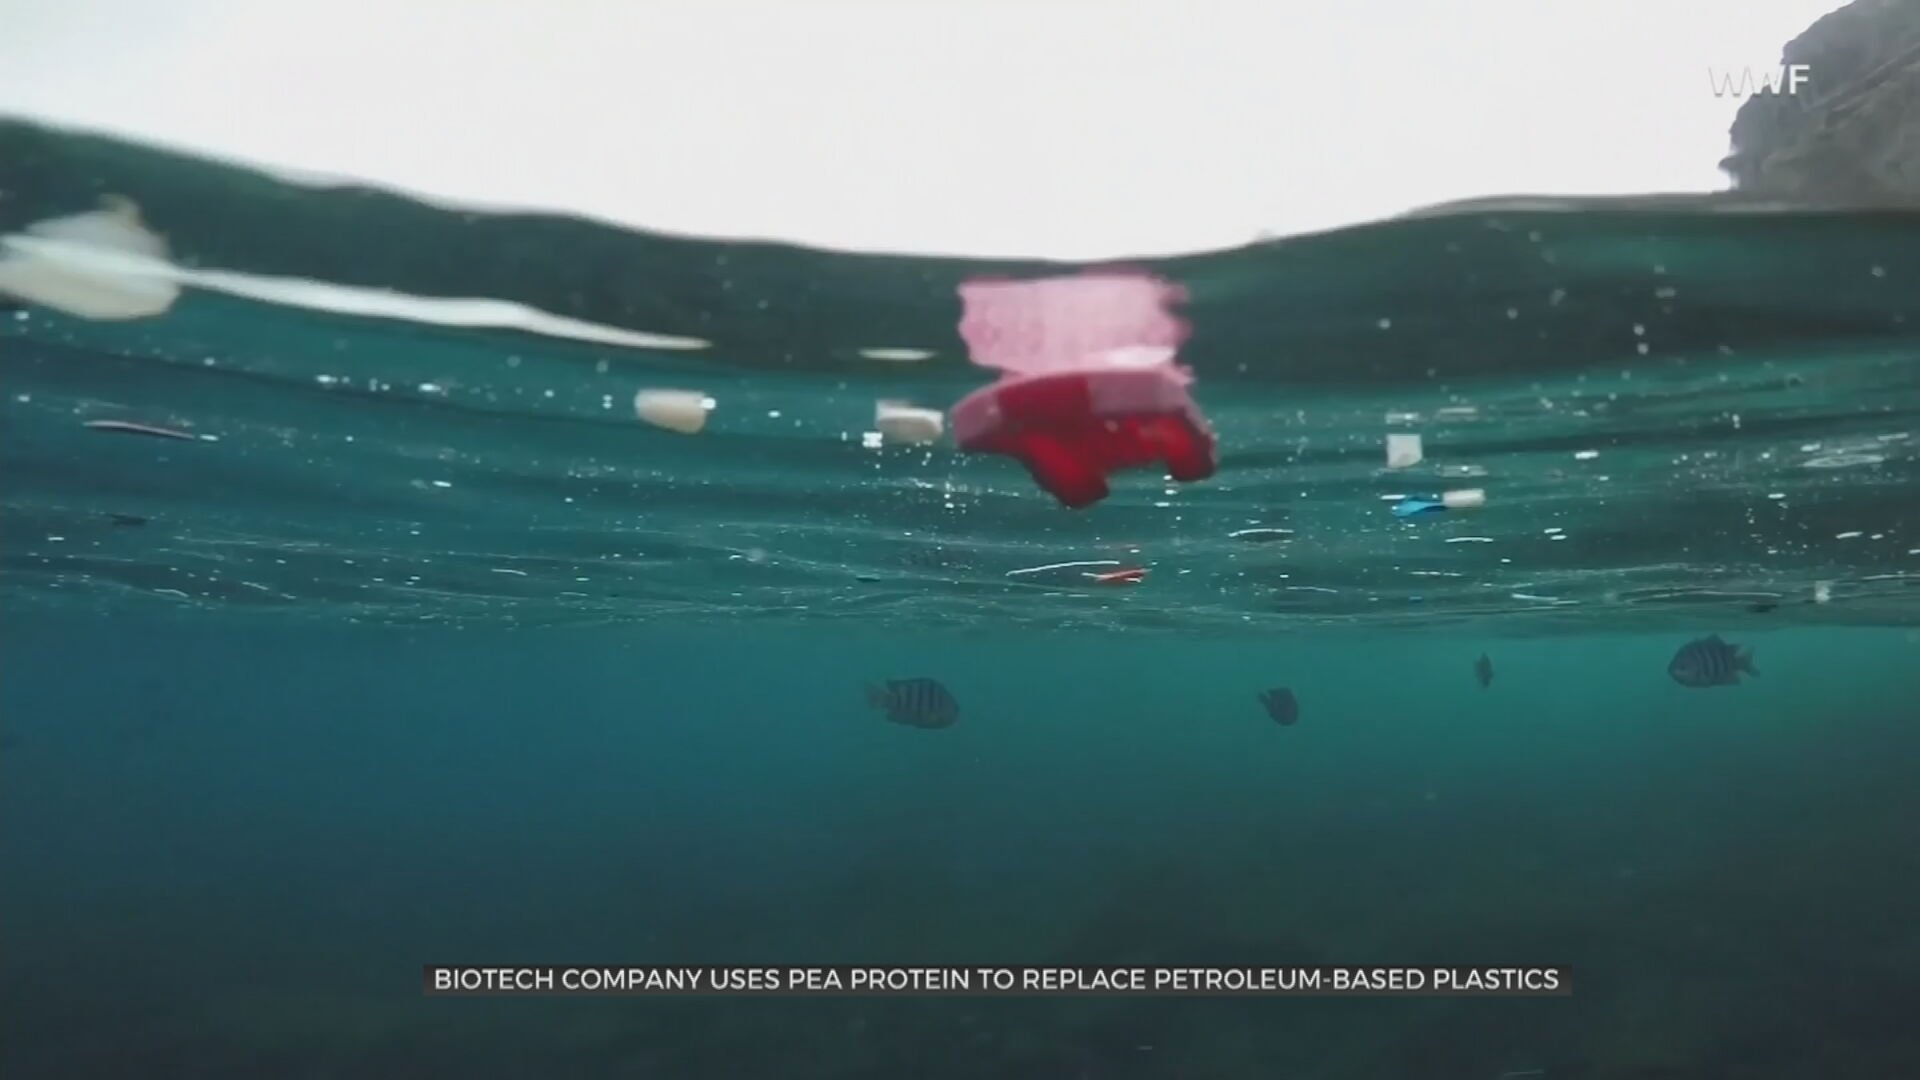 Biotech Company Uses Pea Protein To Create New Biodegradable Plastic